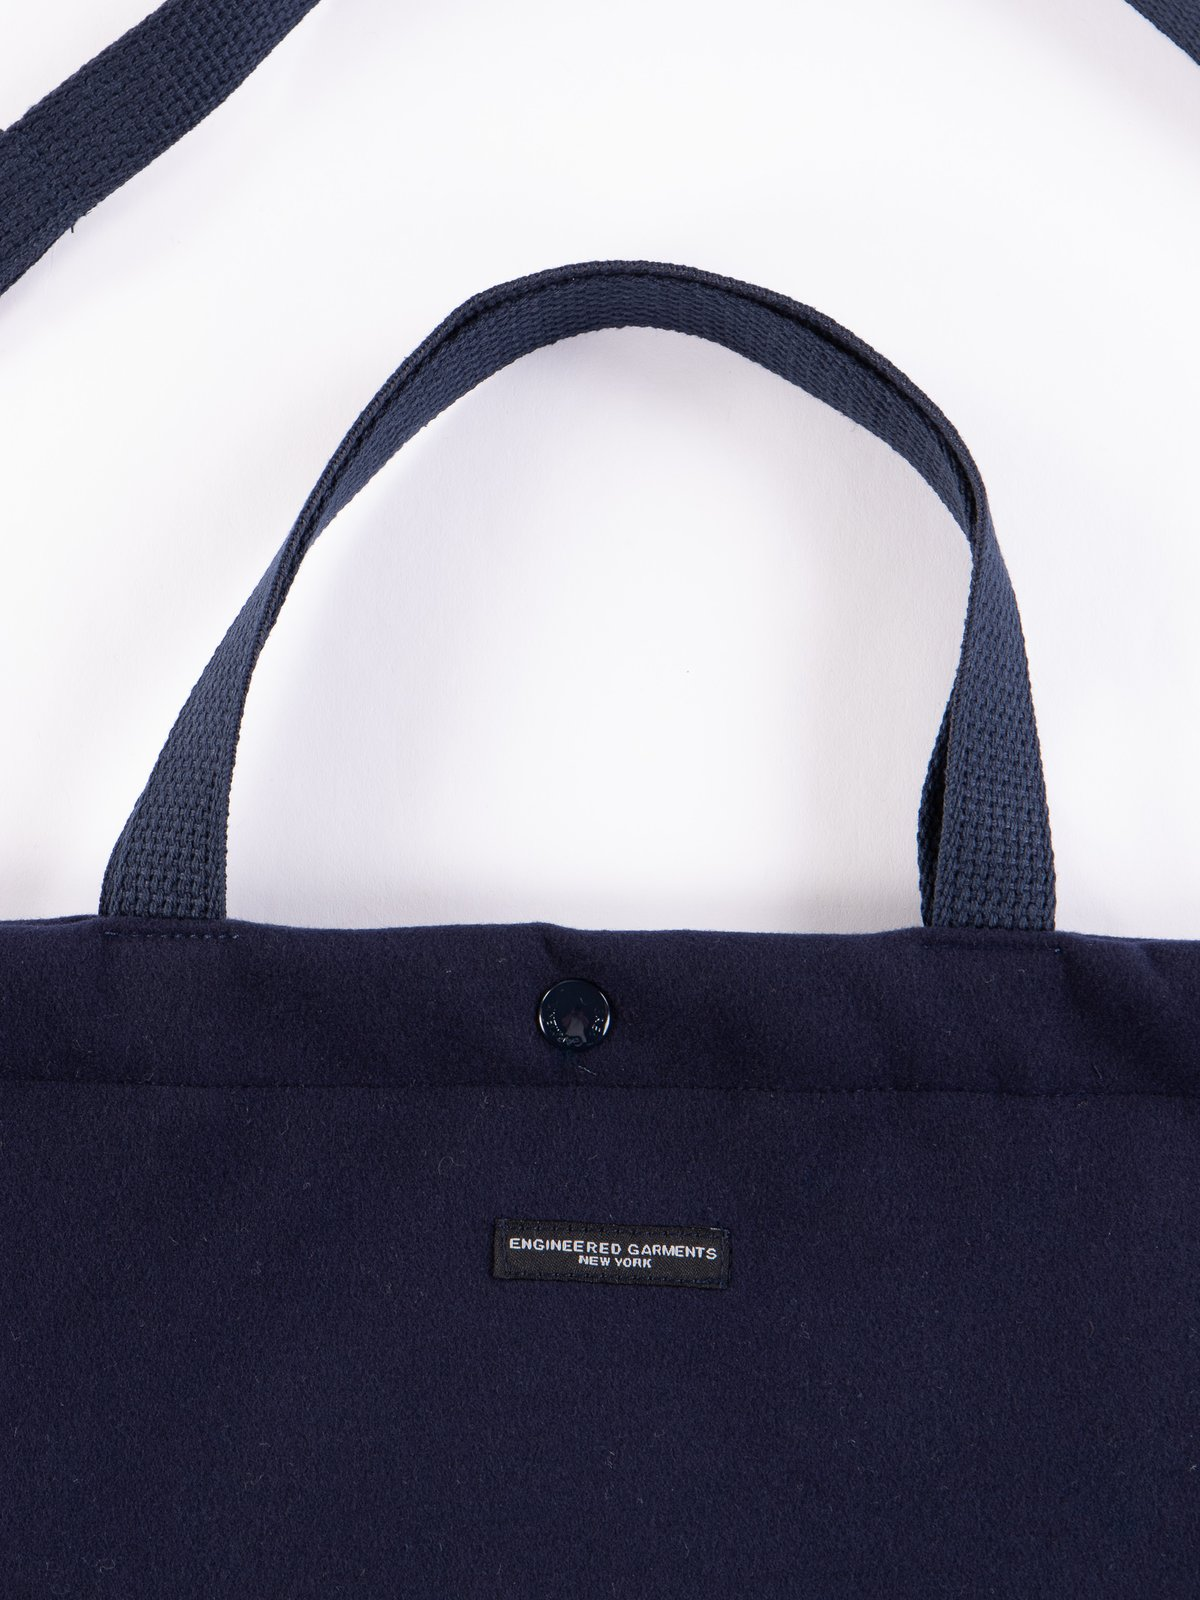 Navy Polyester Fake Melton Carry All Tote - Image 2